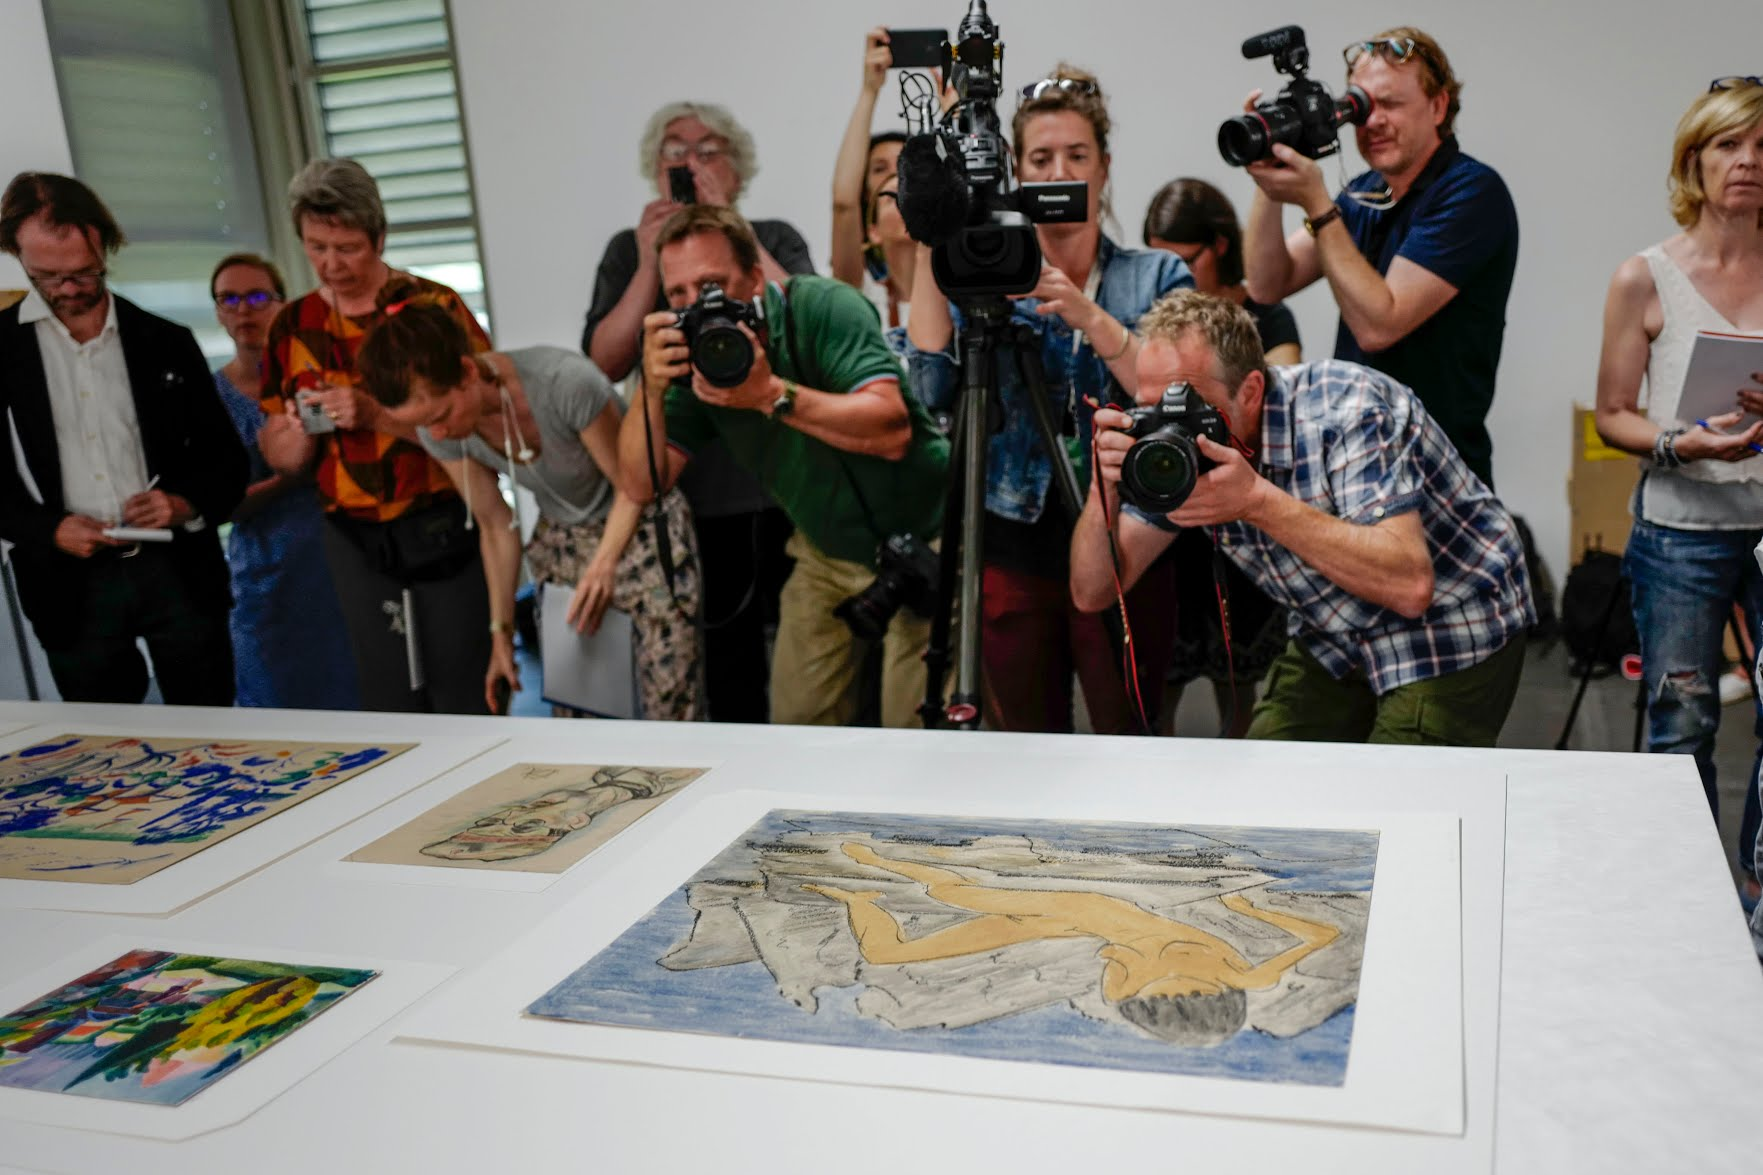 Journalists film, take picture and look at the pieces of a art during the press preview of the first masterpieces of the estate of German collector Cornelius Gurlitt at the Museum of Fine Arts Bern (Kunstmuseum Bern) on July 7, 2017 in Bern. Photo credit should read Valeriano Di Domenico/AFP/Getty Images.